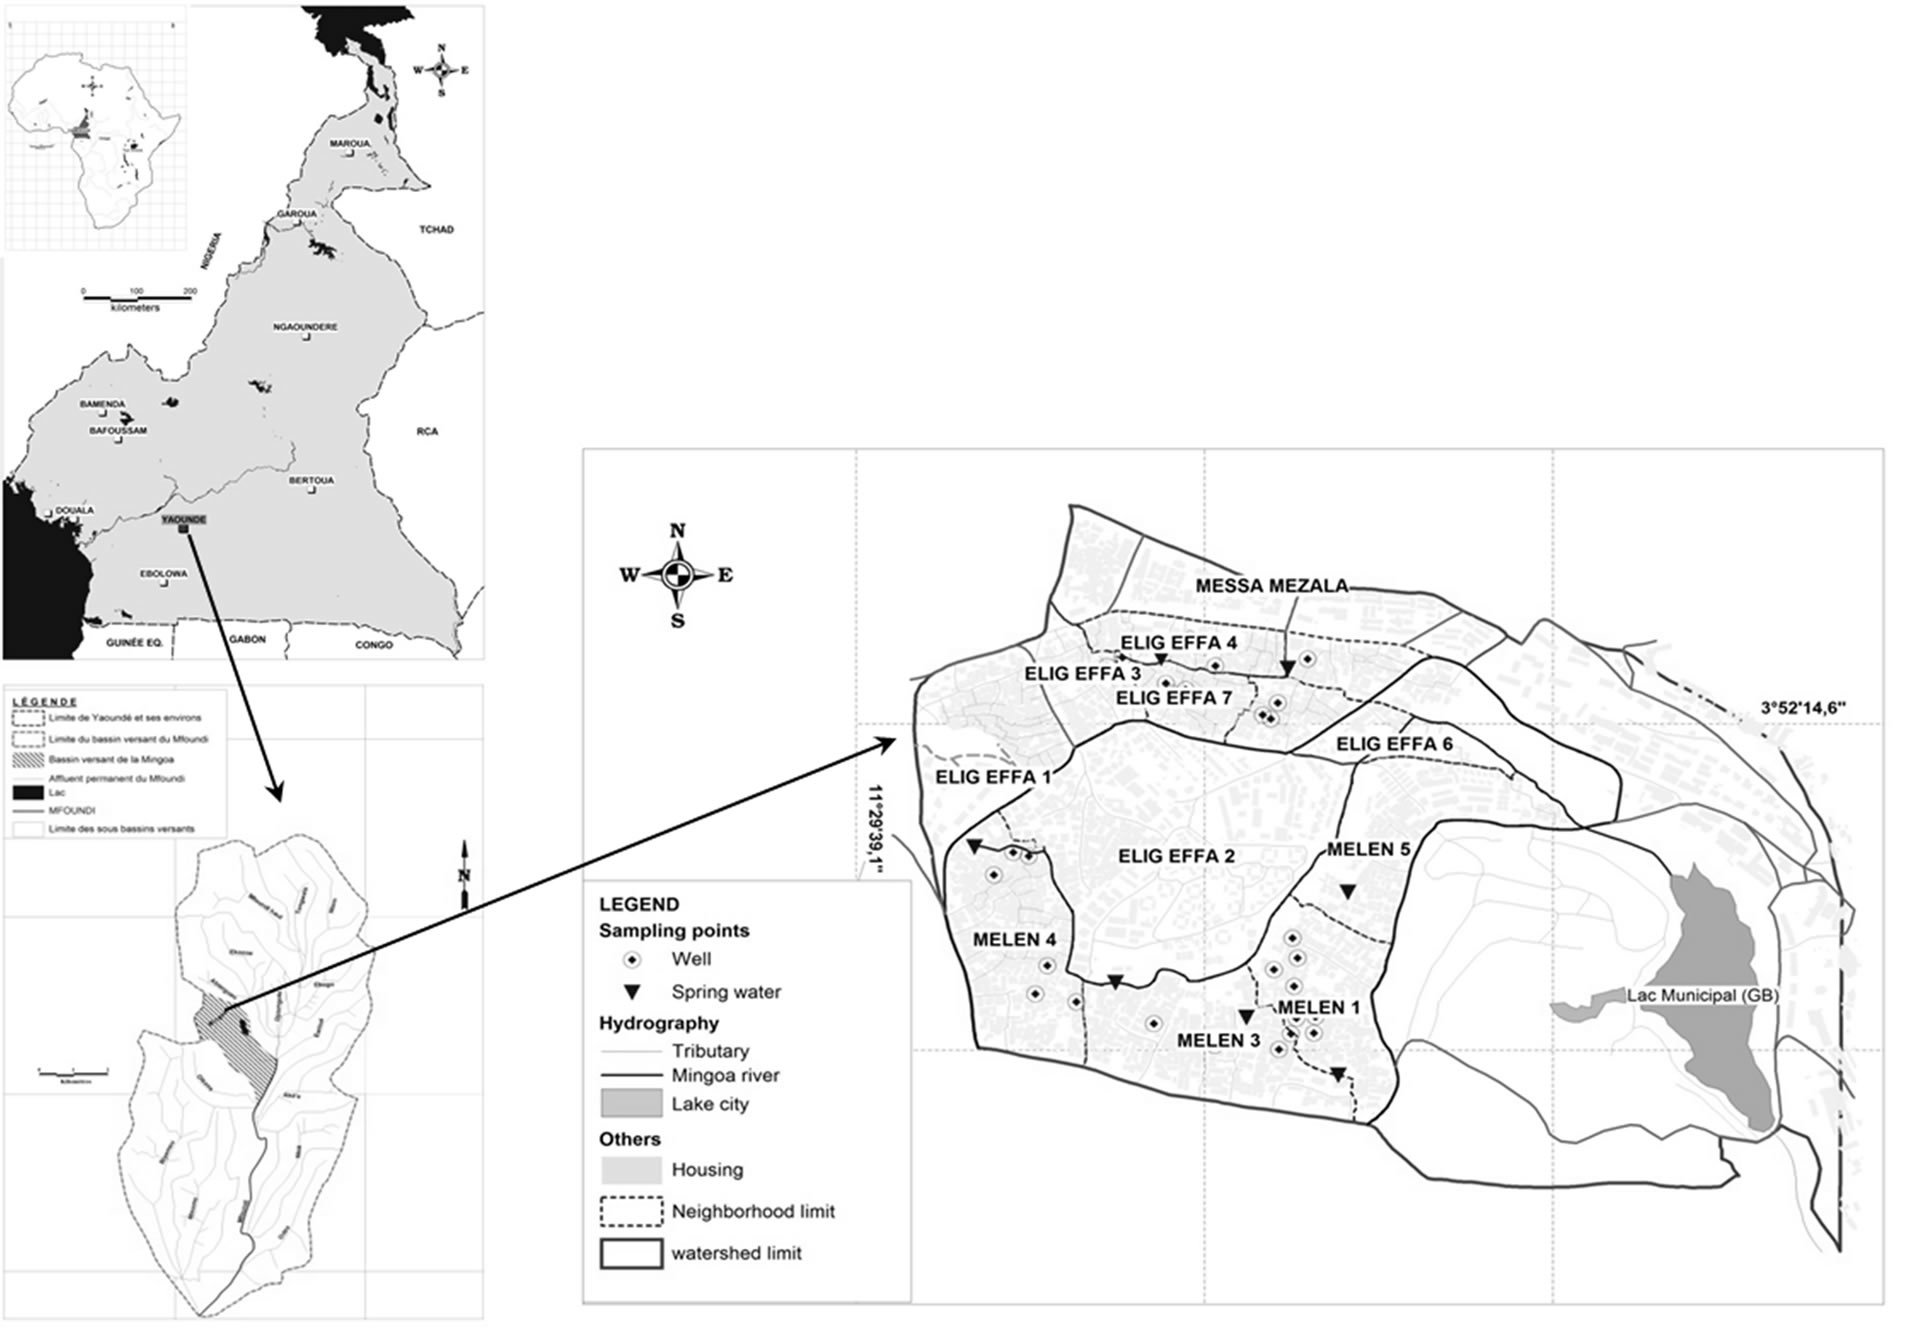 evaluation of groundwater suitability for domestic and